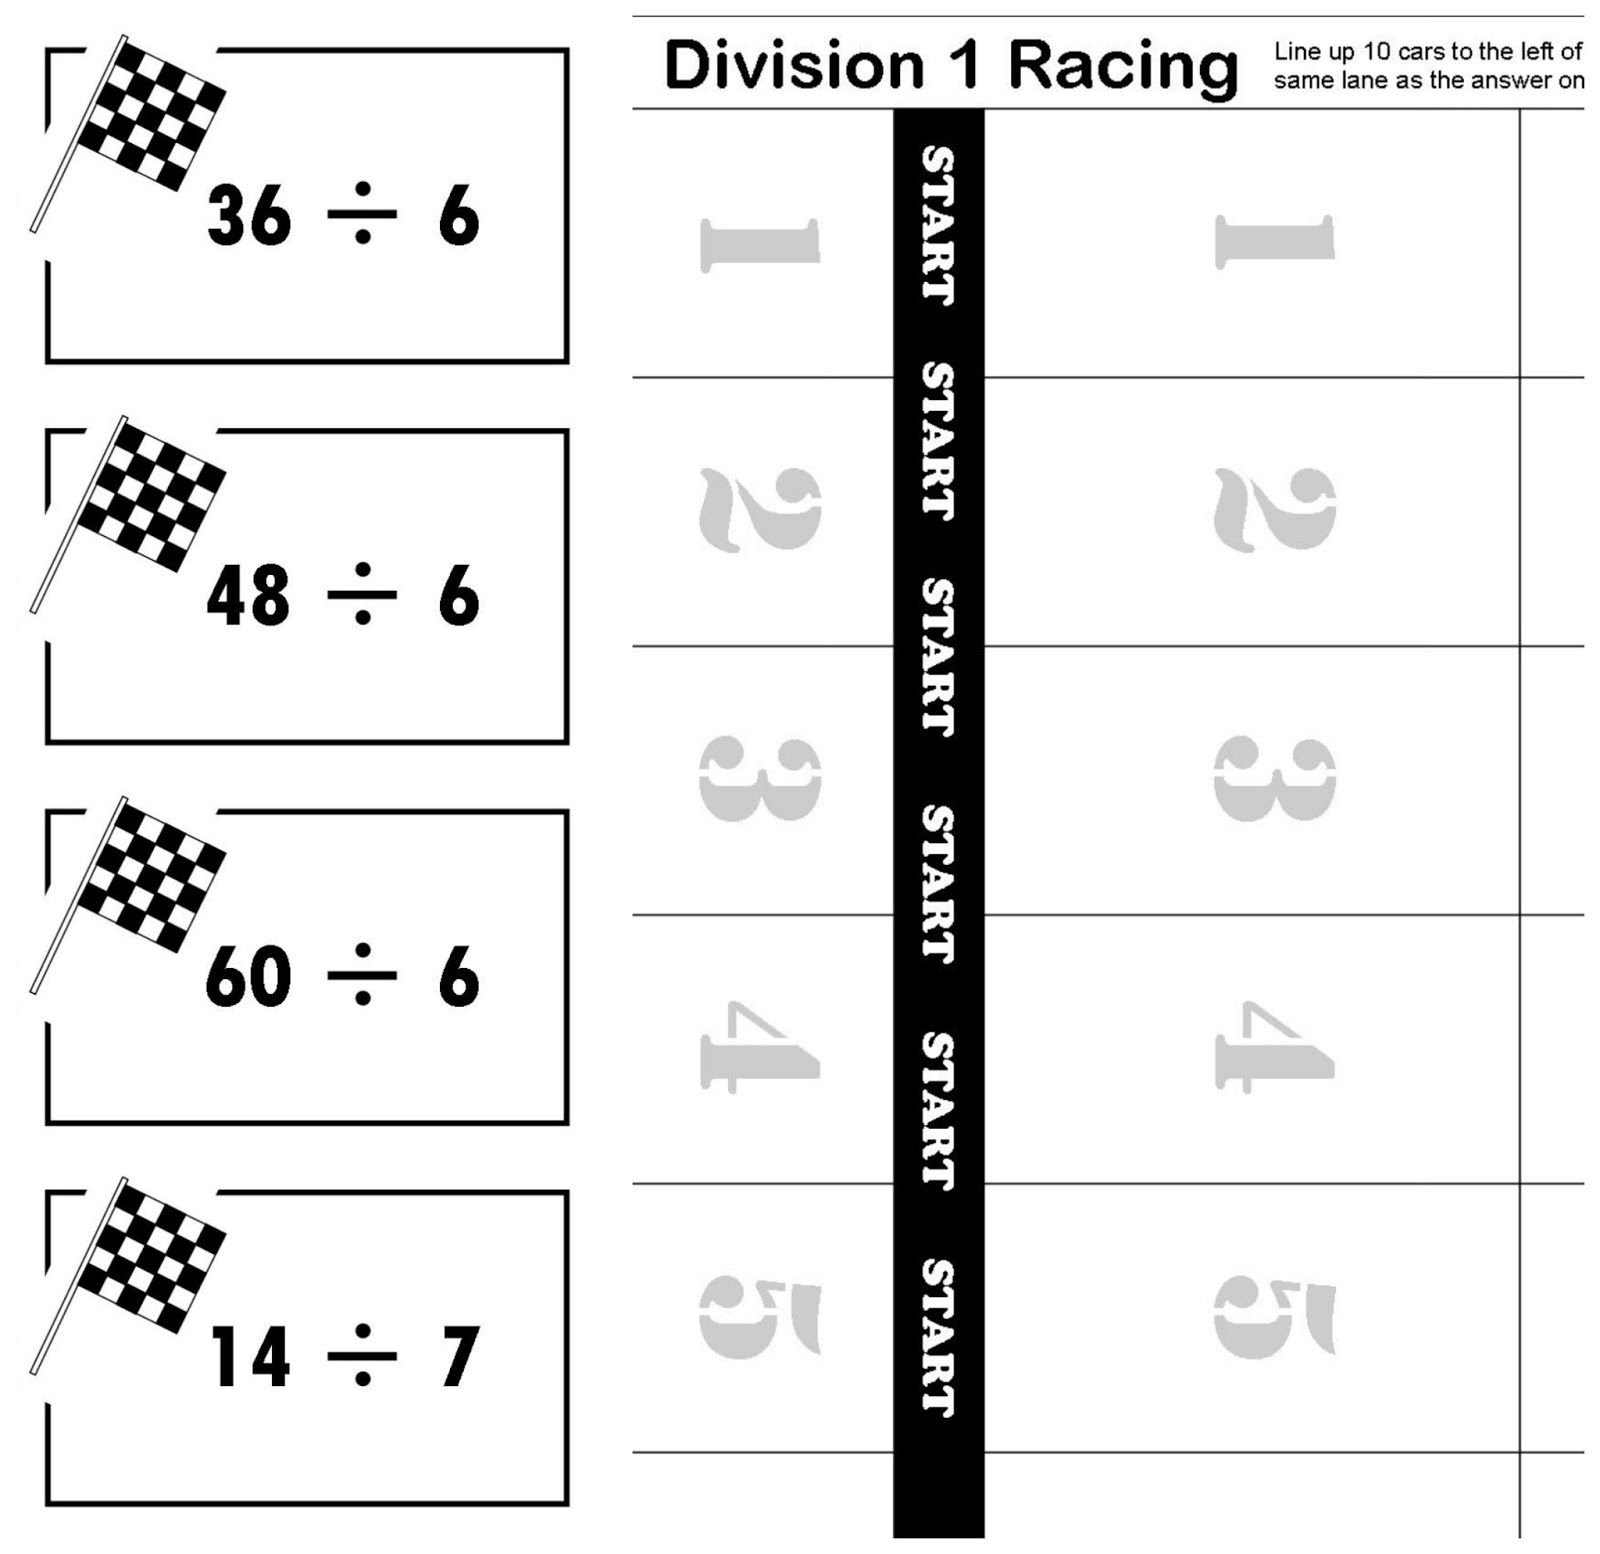 worksheet Division Flash Cards Printable relentlessly fun deceptively educational division 1 racing printable math game